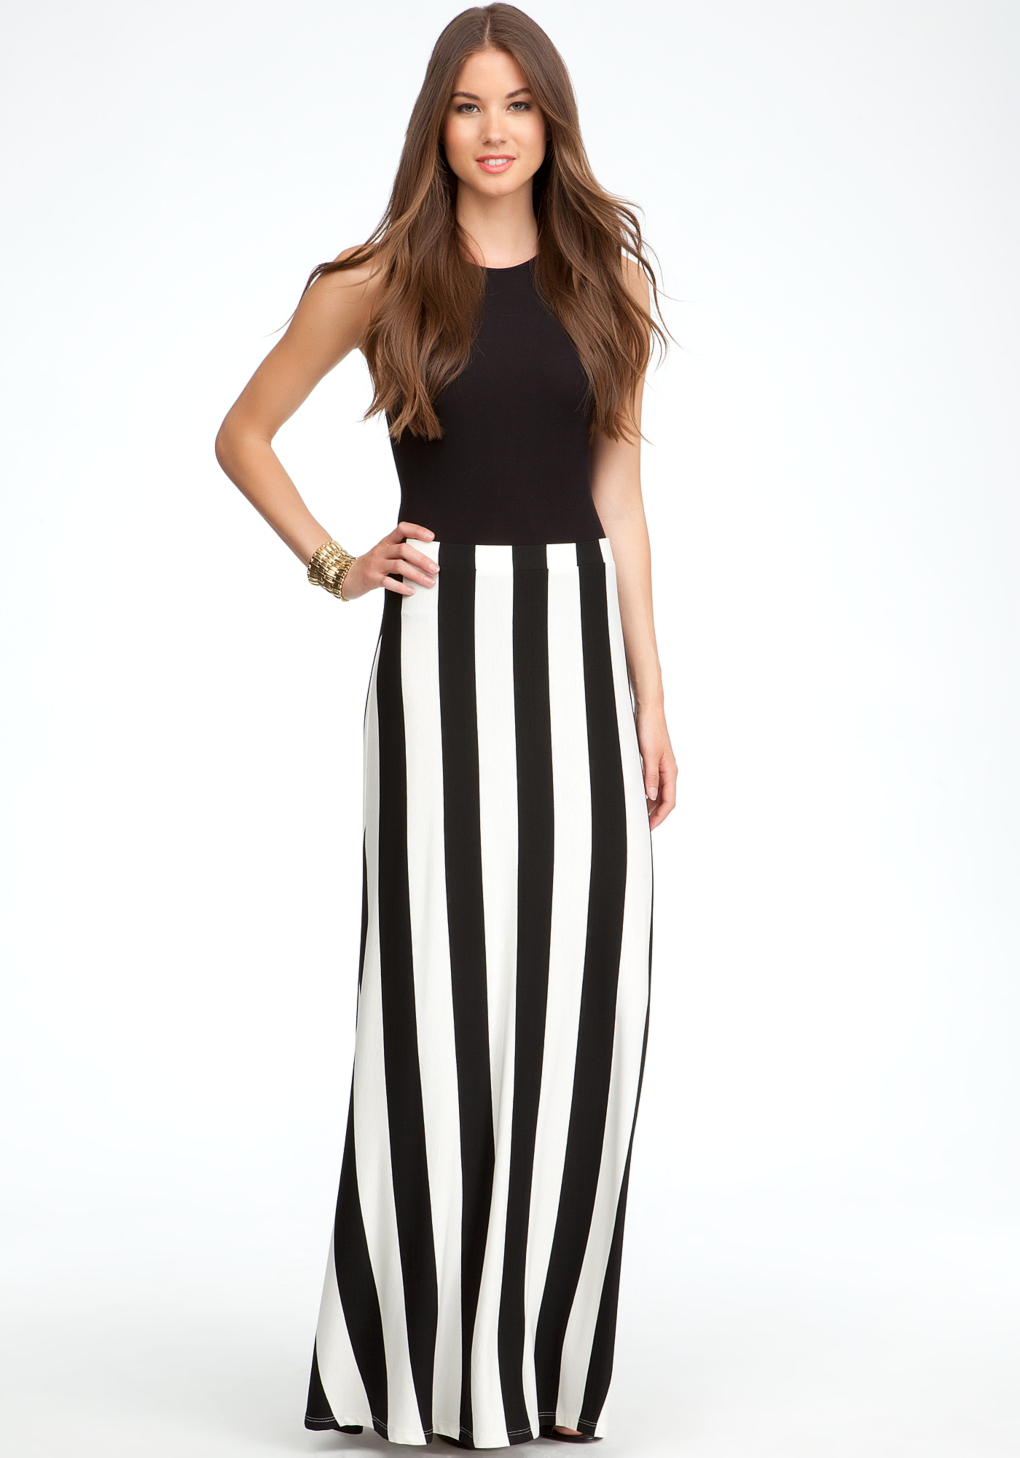 Black And White Striped Maxi Skirt Outfit